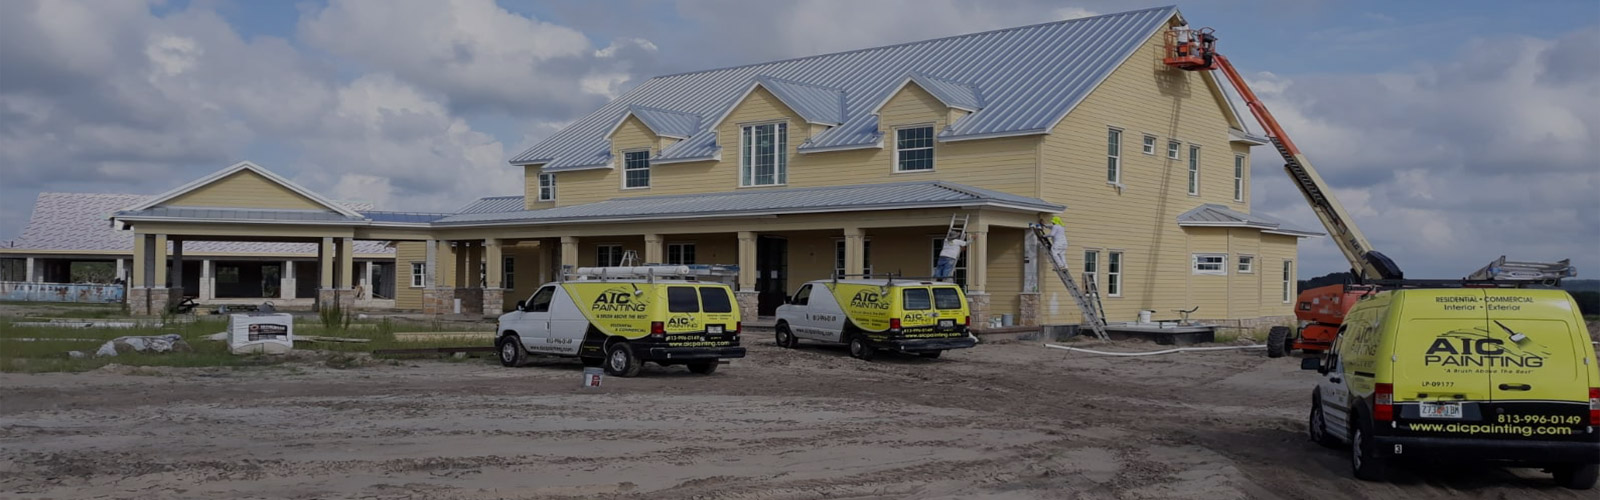 Painting Company Tampa Fl Aic Painting